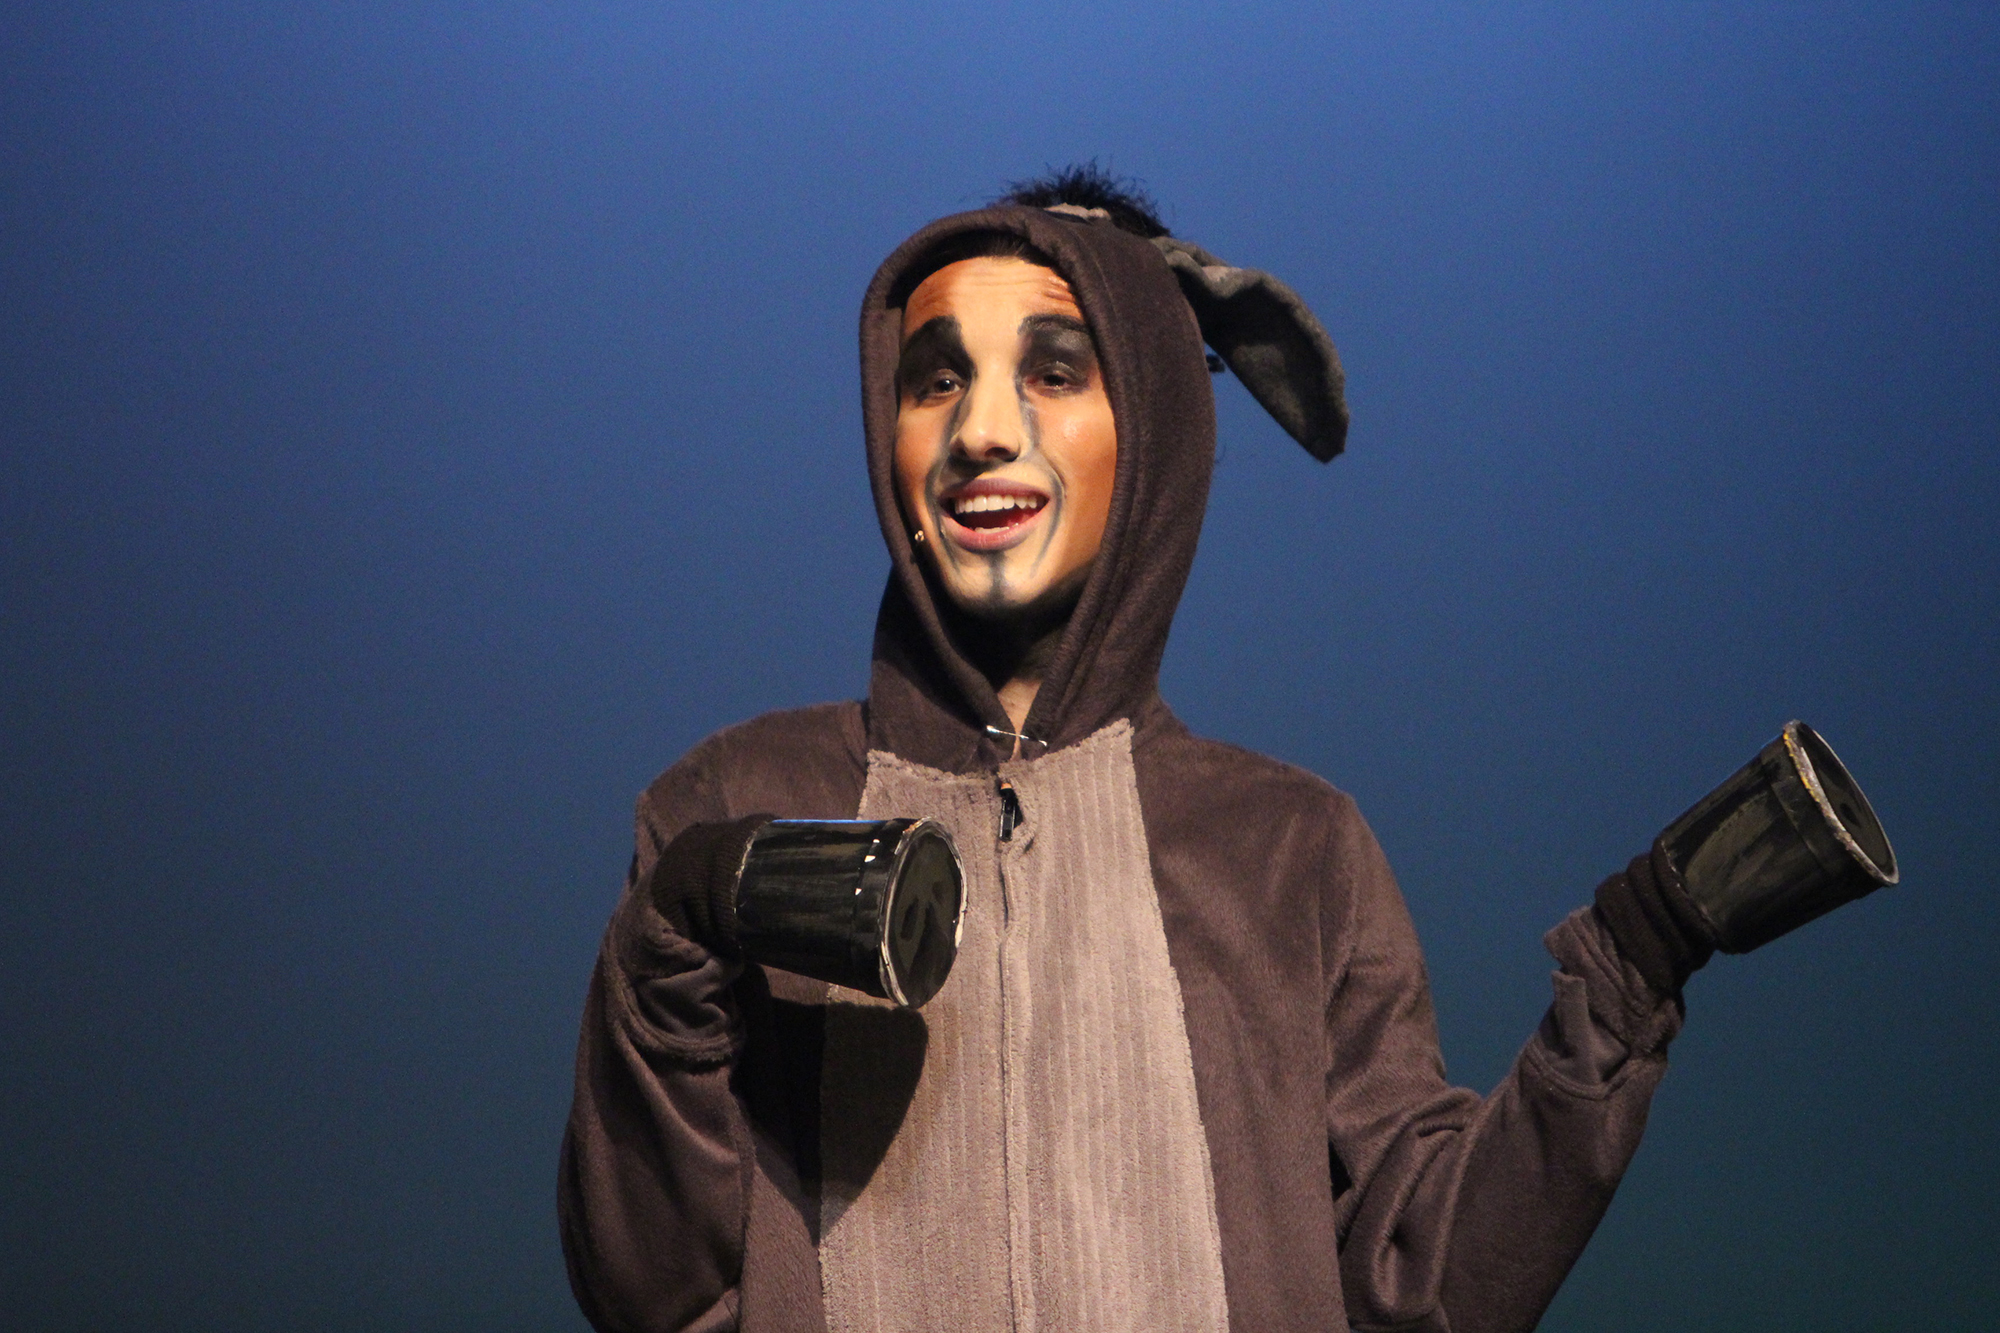 Joel Ochoa as Donkey